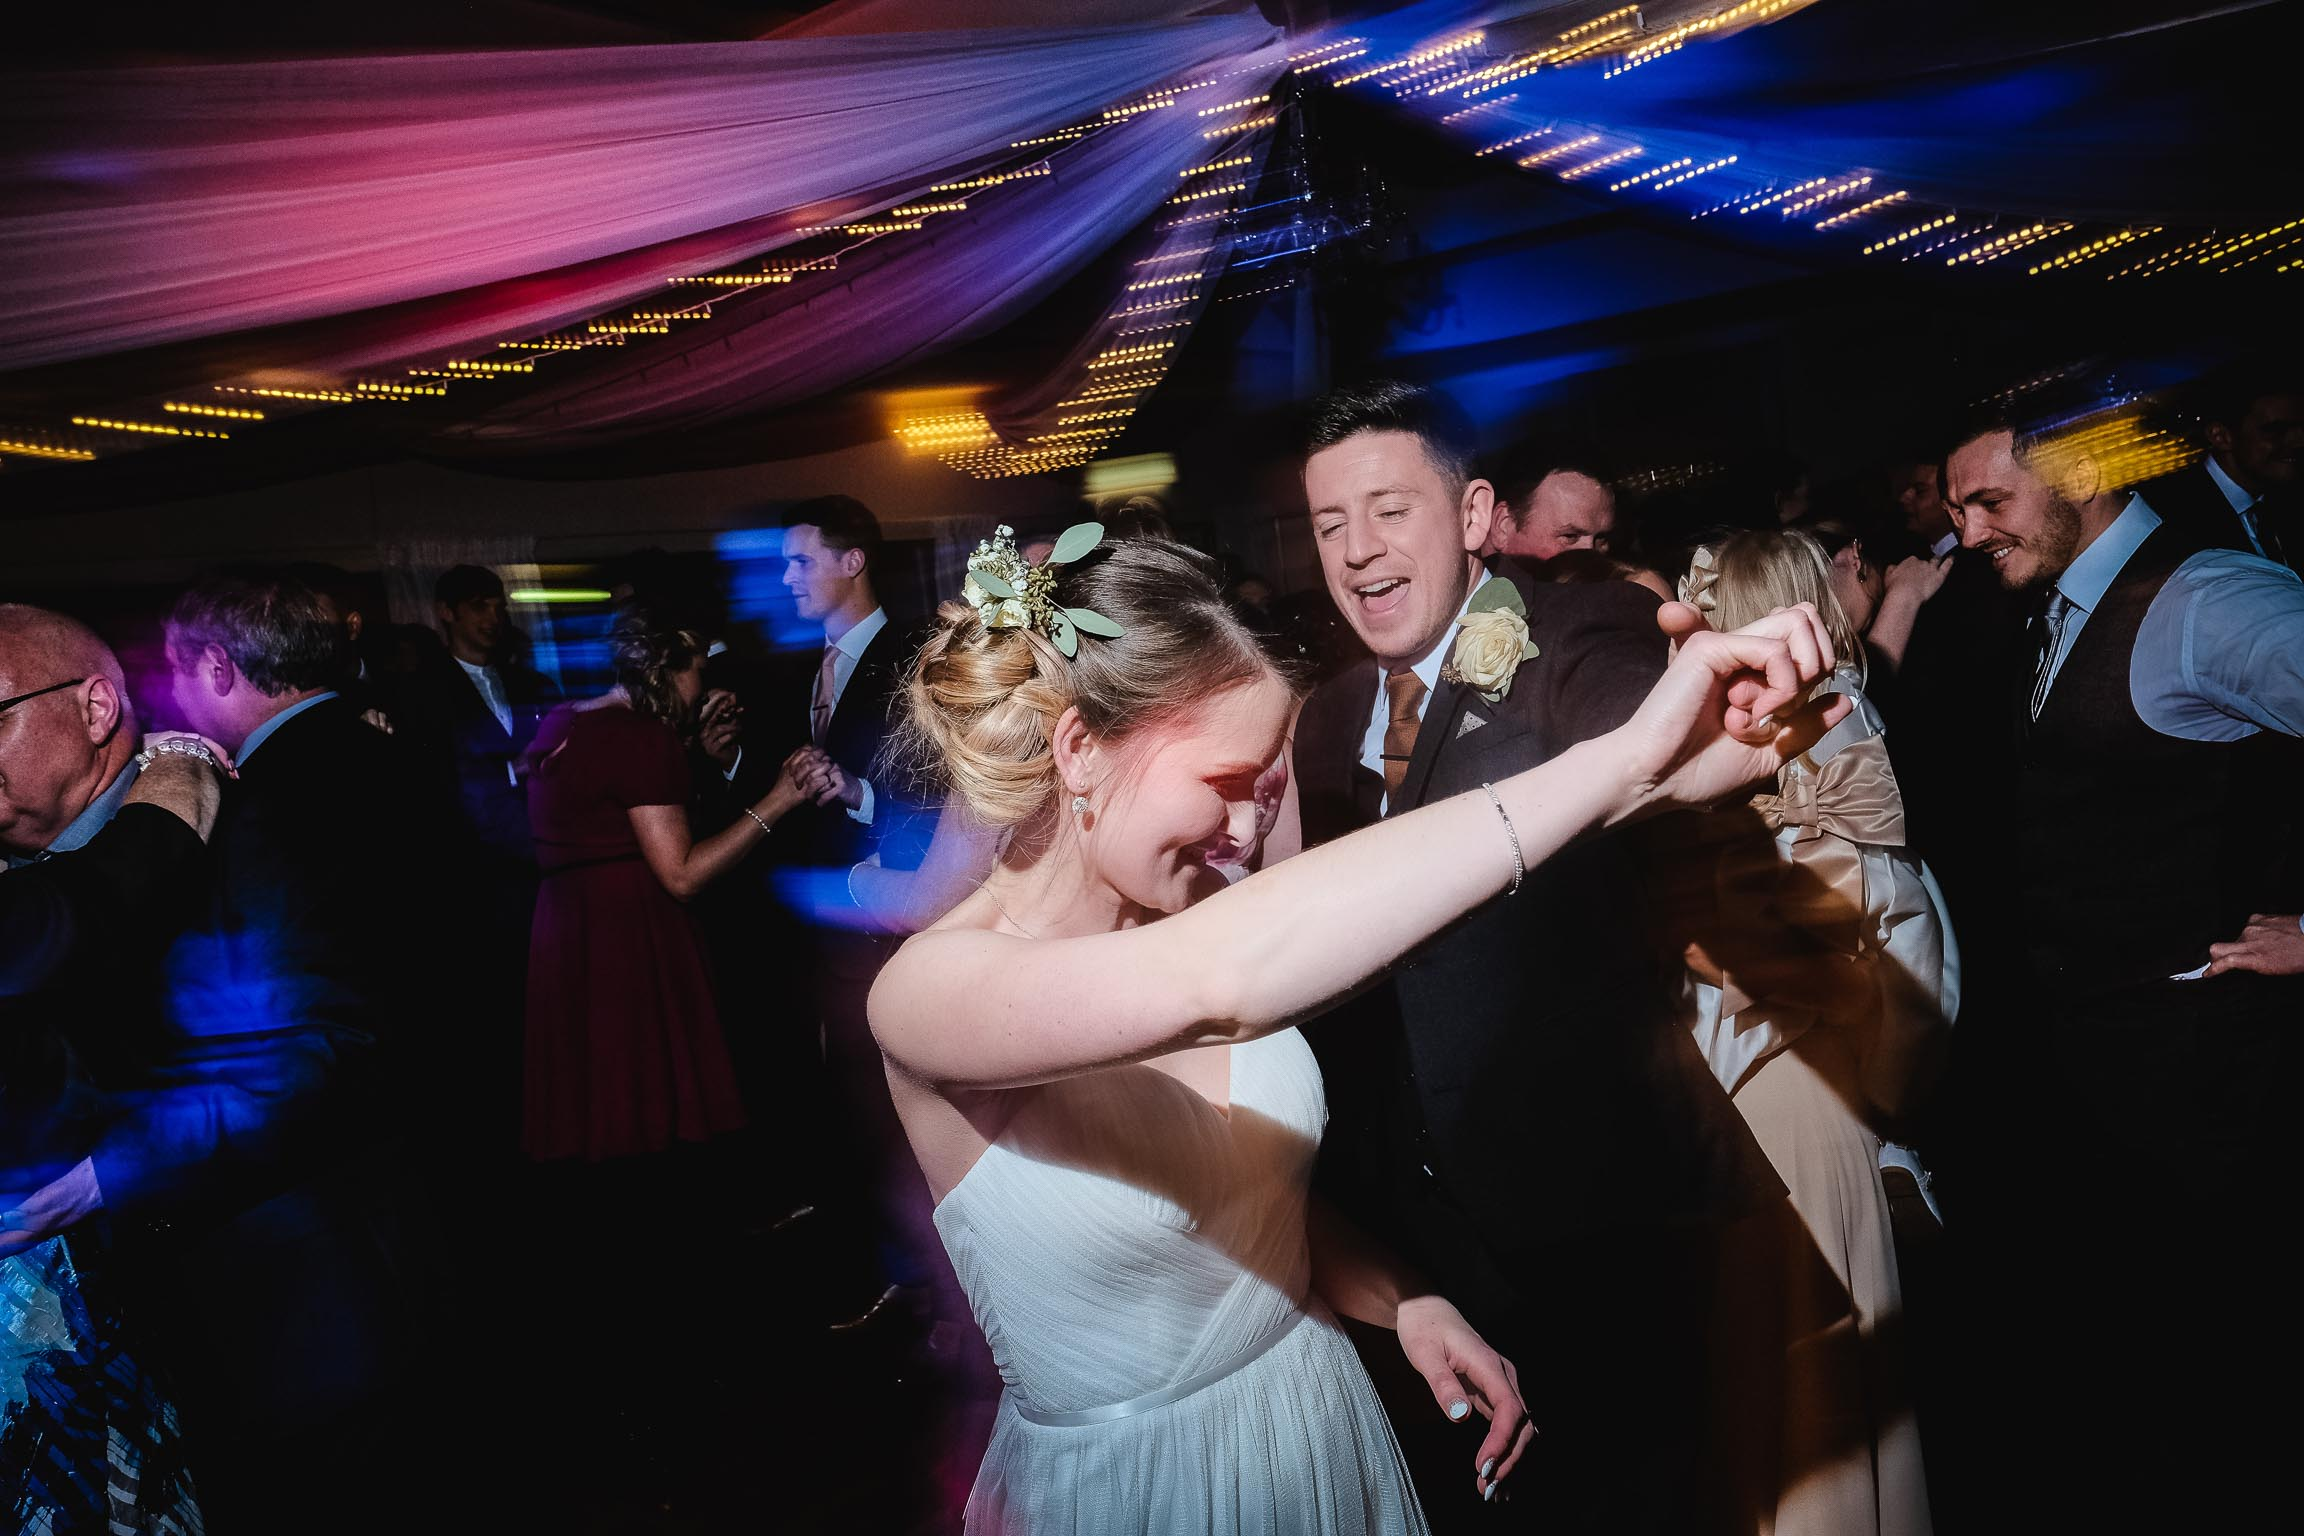 Stirk house clitheroe lancashire wedding photographer covering a documentary photography style  (74 of 85).jpg